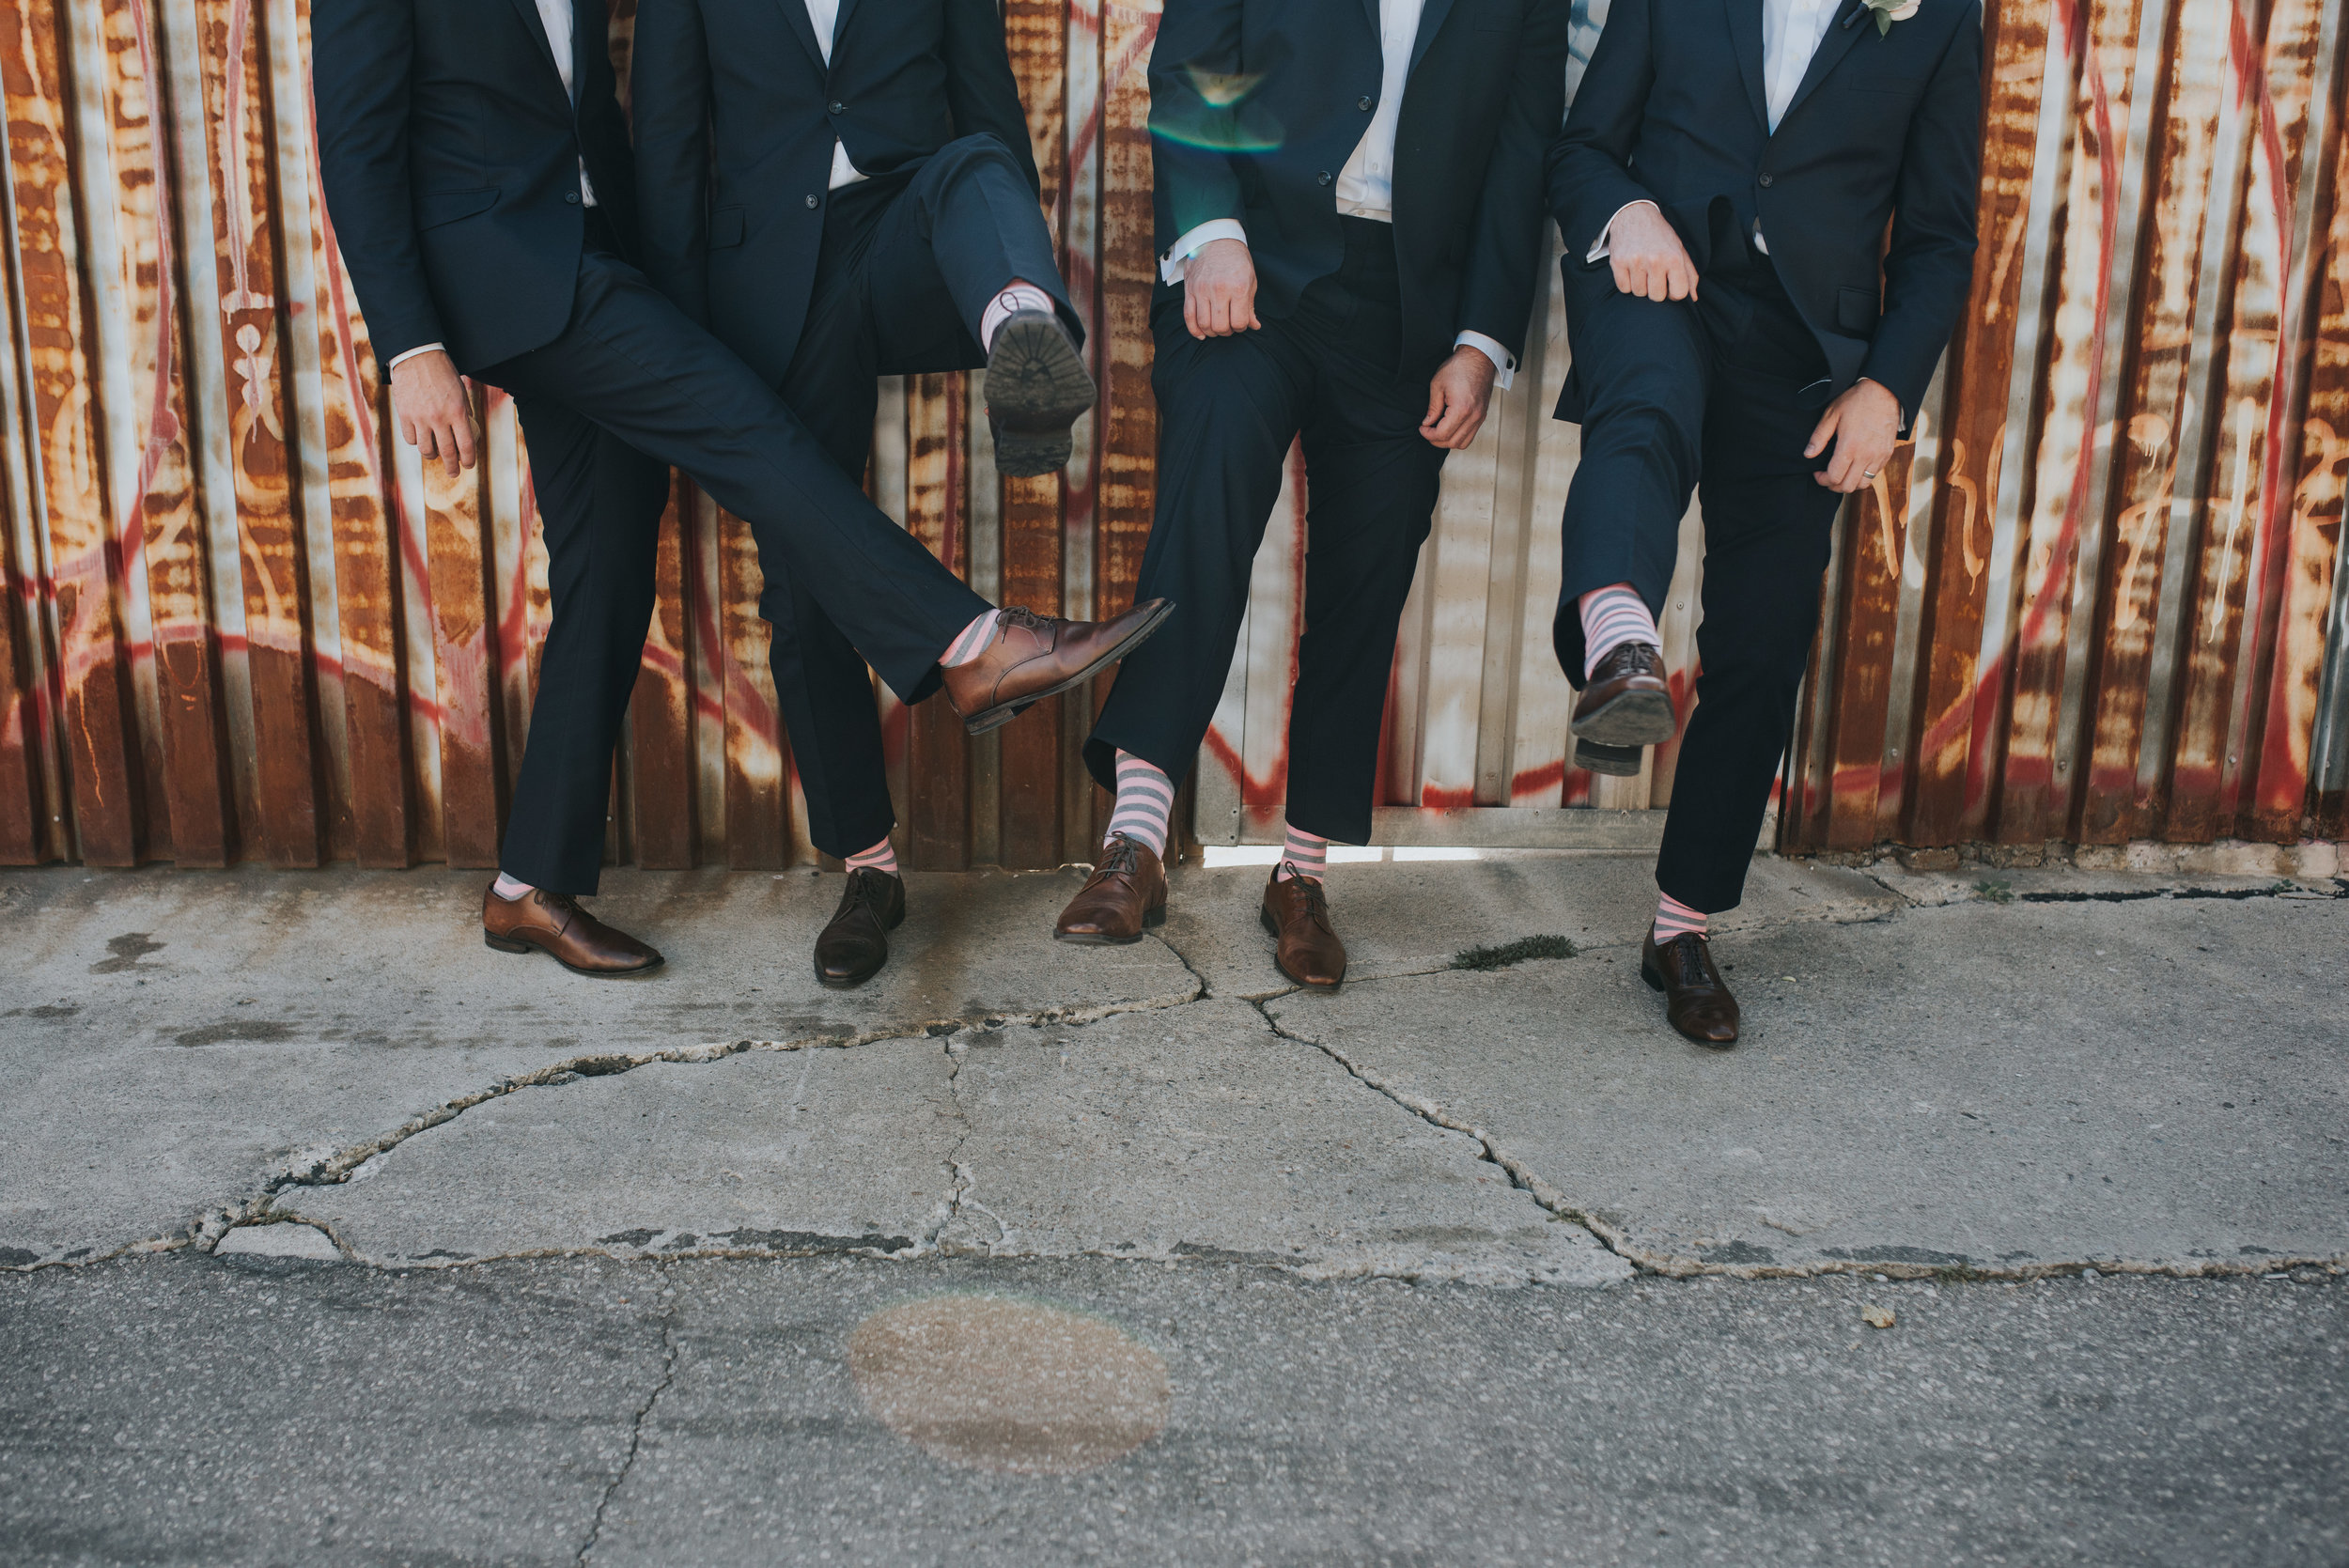 men-in-wedding-party-socks-toronto-same-sex-wedding-willow-and-birch-photography-documentary-wedding-photographers.jpg